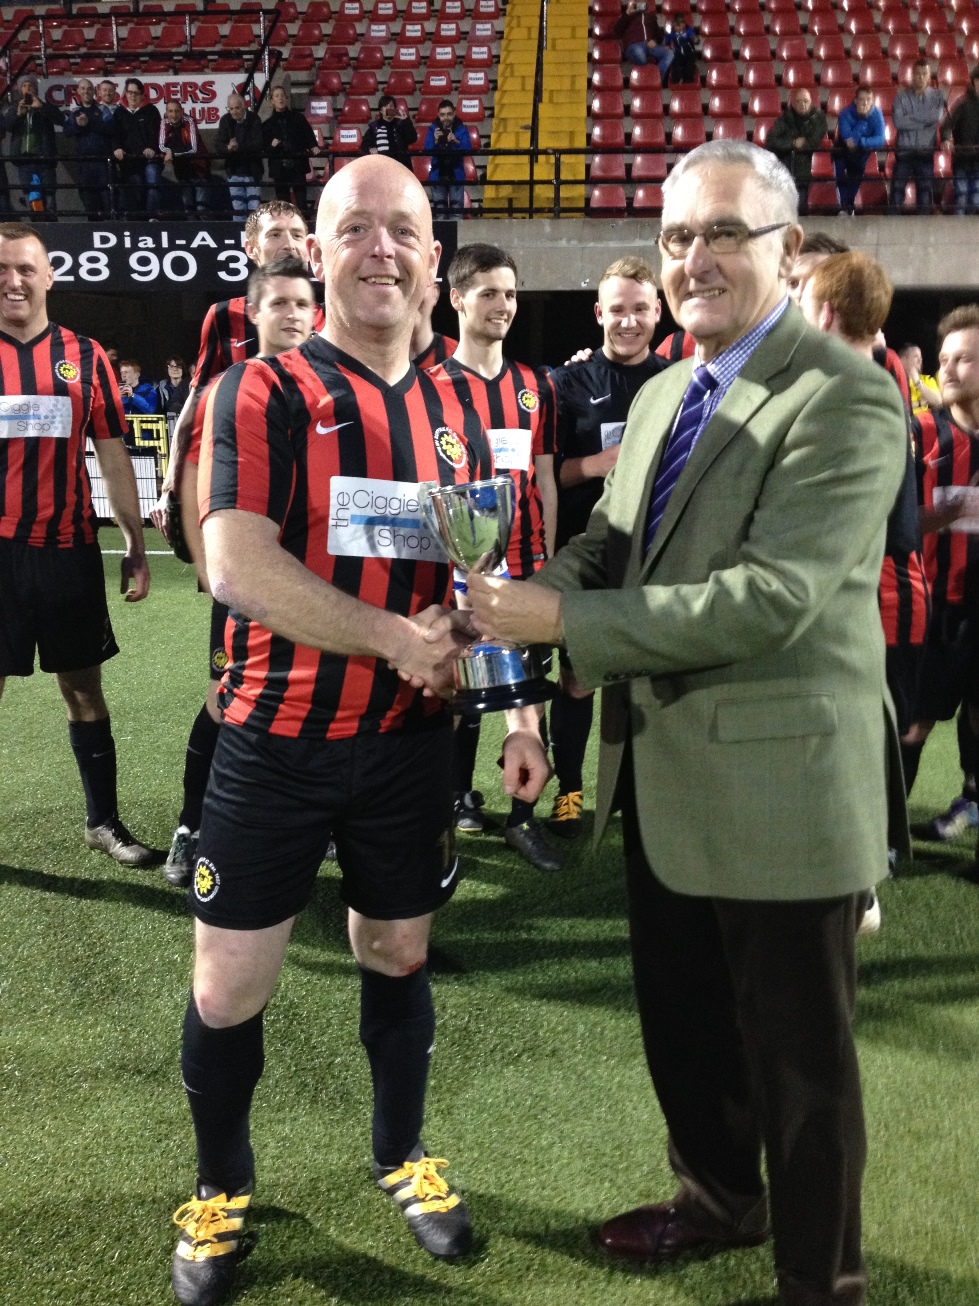 Suffolk FC 11's captain  <p>League Chairman Terry Pateman presents cup to Suffolk FC 11's captain</p>